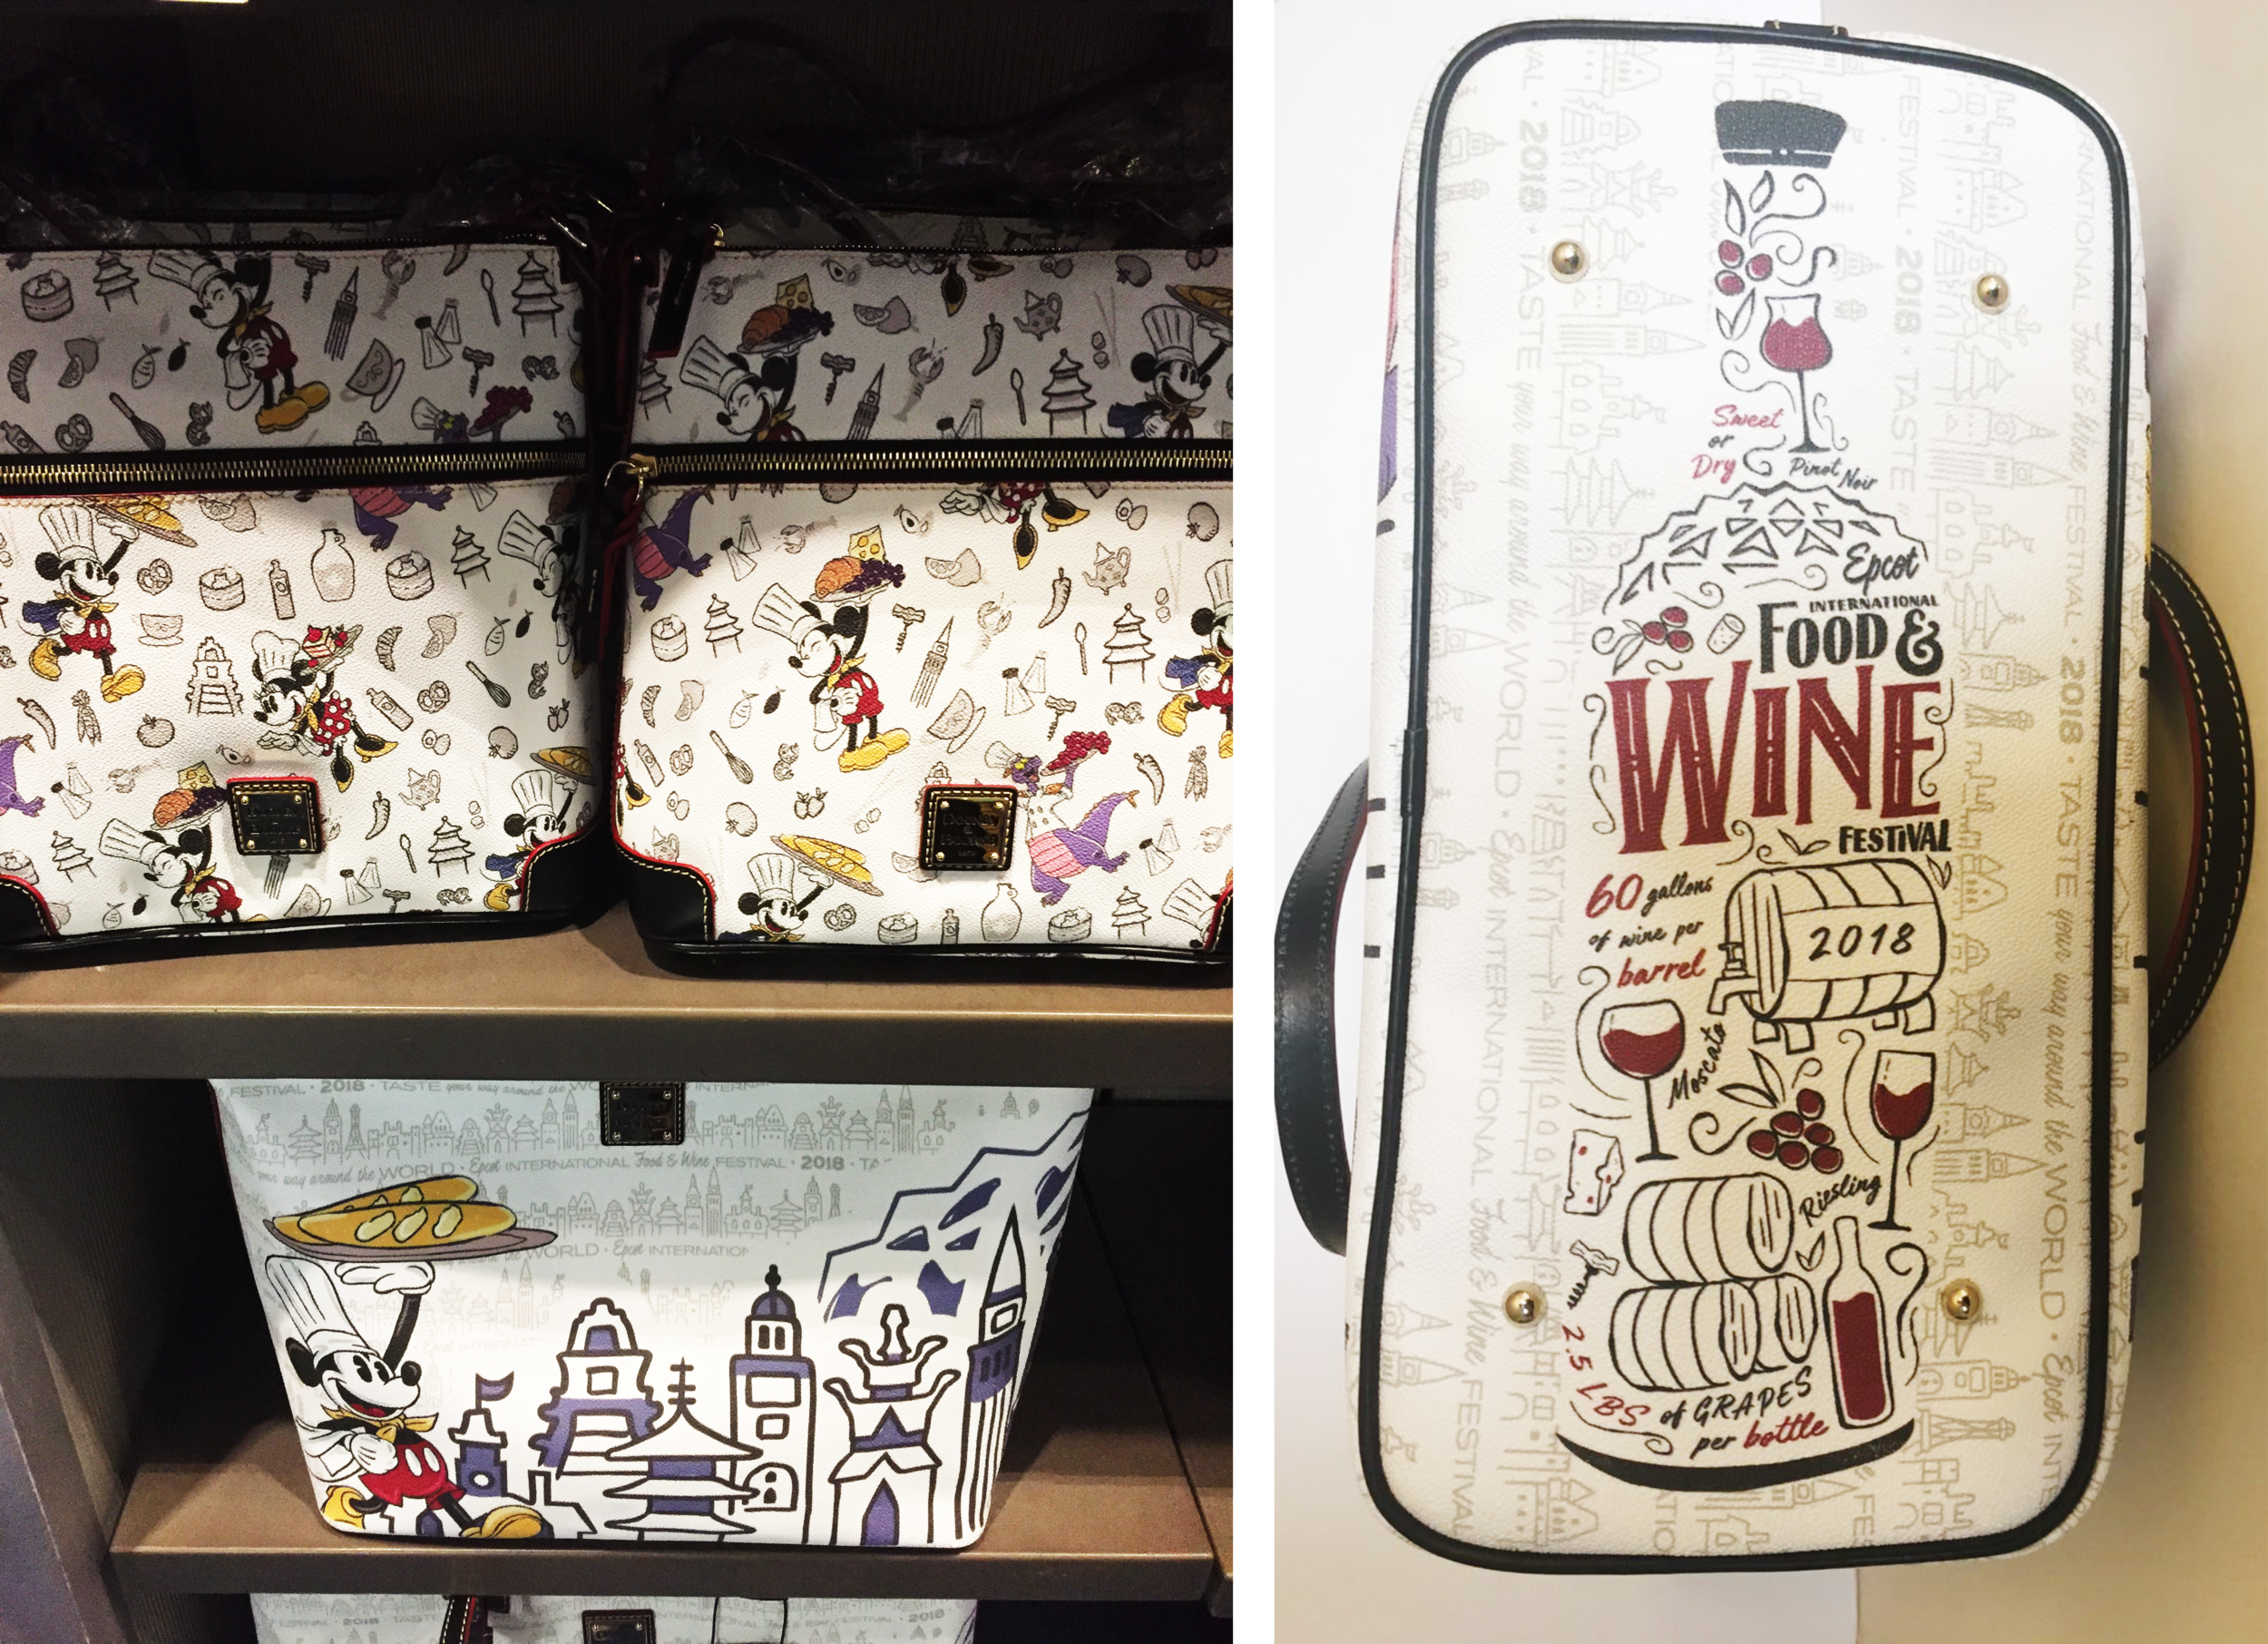 Icons featured on the annual Dooney and Bourke festival bags, as well as the full wine illustration featured on the Dooney and Bourke tote bag.